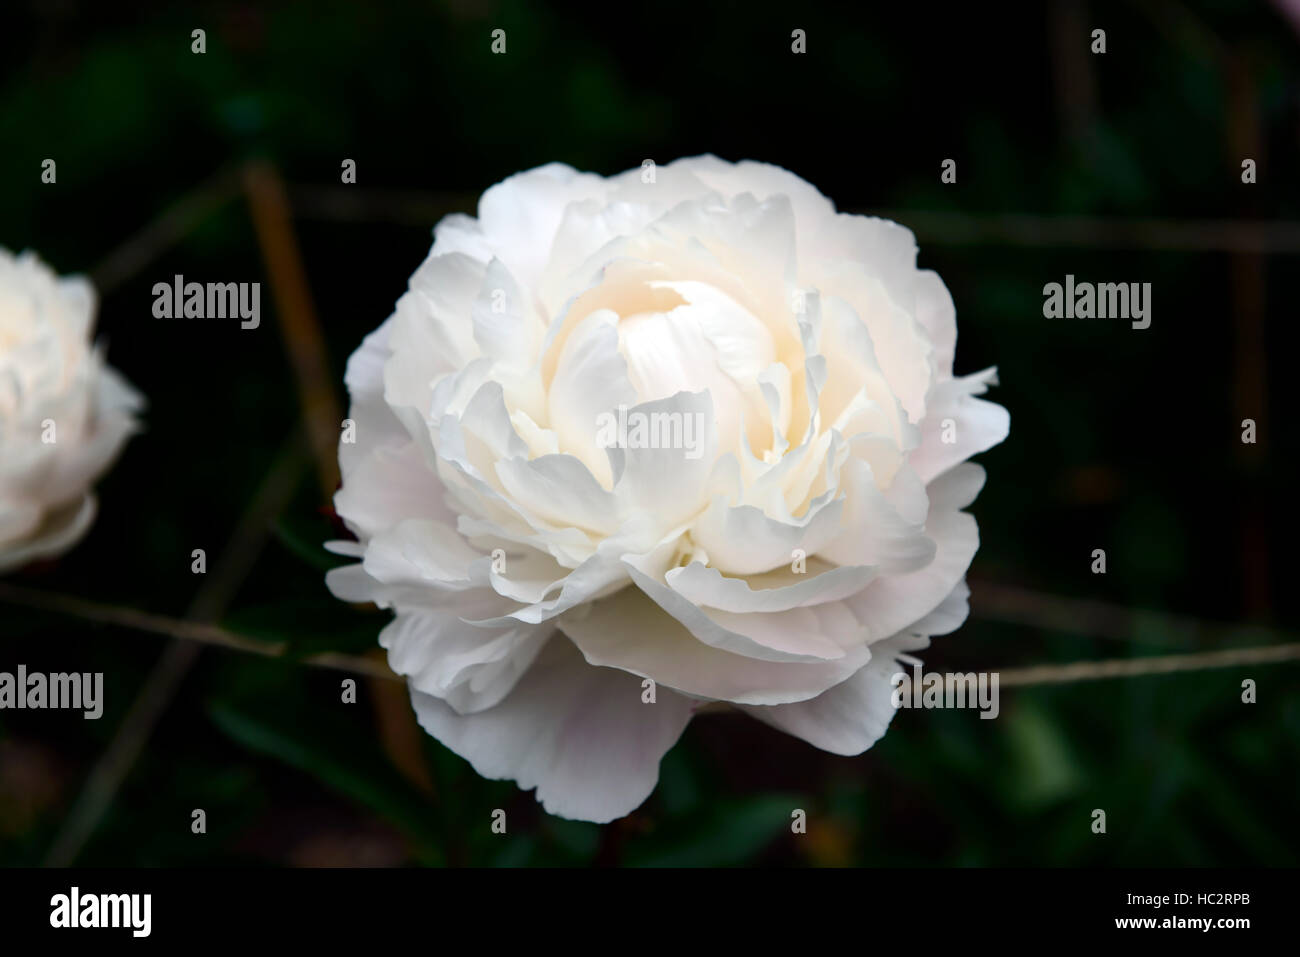 paeonia lactiflora kelways glorious peony peonies white double flower flowers flowering perennial bed border scented Stock Photo